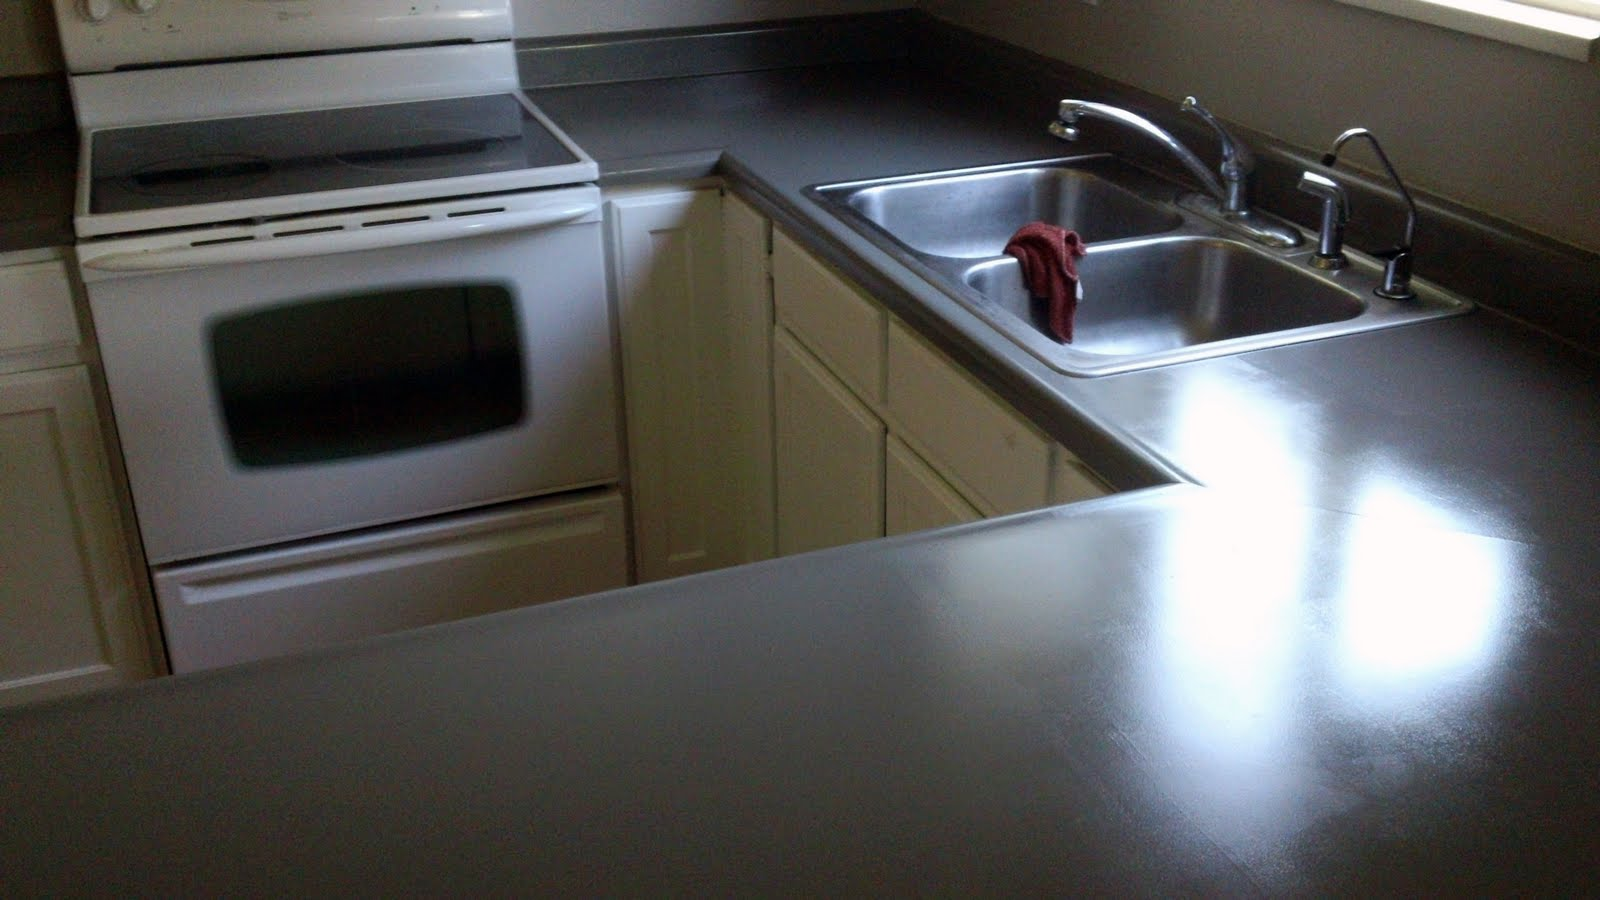 ... to delete this painted countertops image from our index specify a